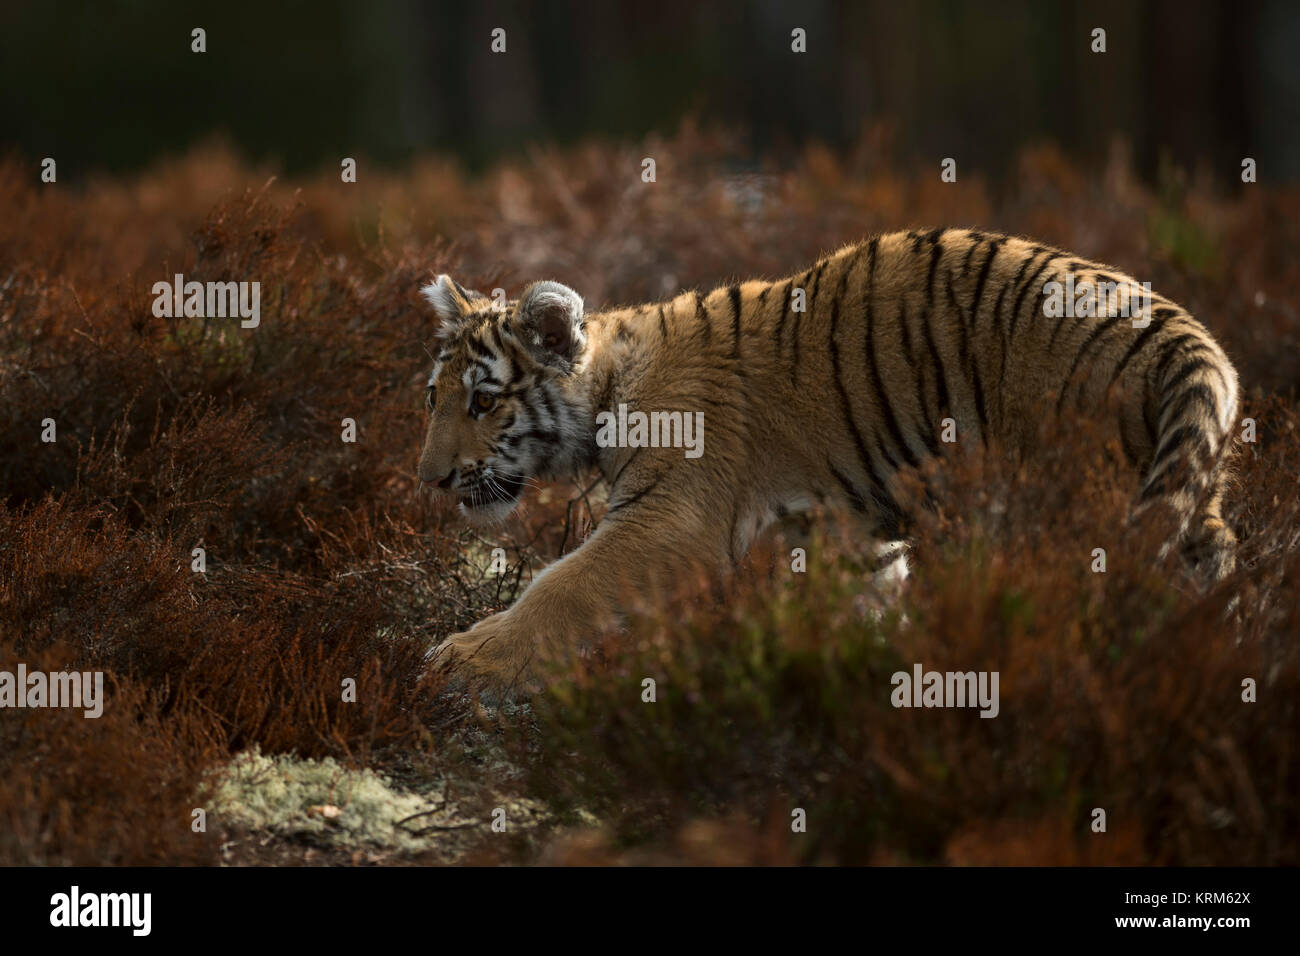 Royal Bengal Tiger / Koenigstiger ( Panthera tigris ), young cub, sneaking, walking stealthy, furtive through the - Stock Image